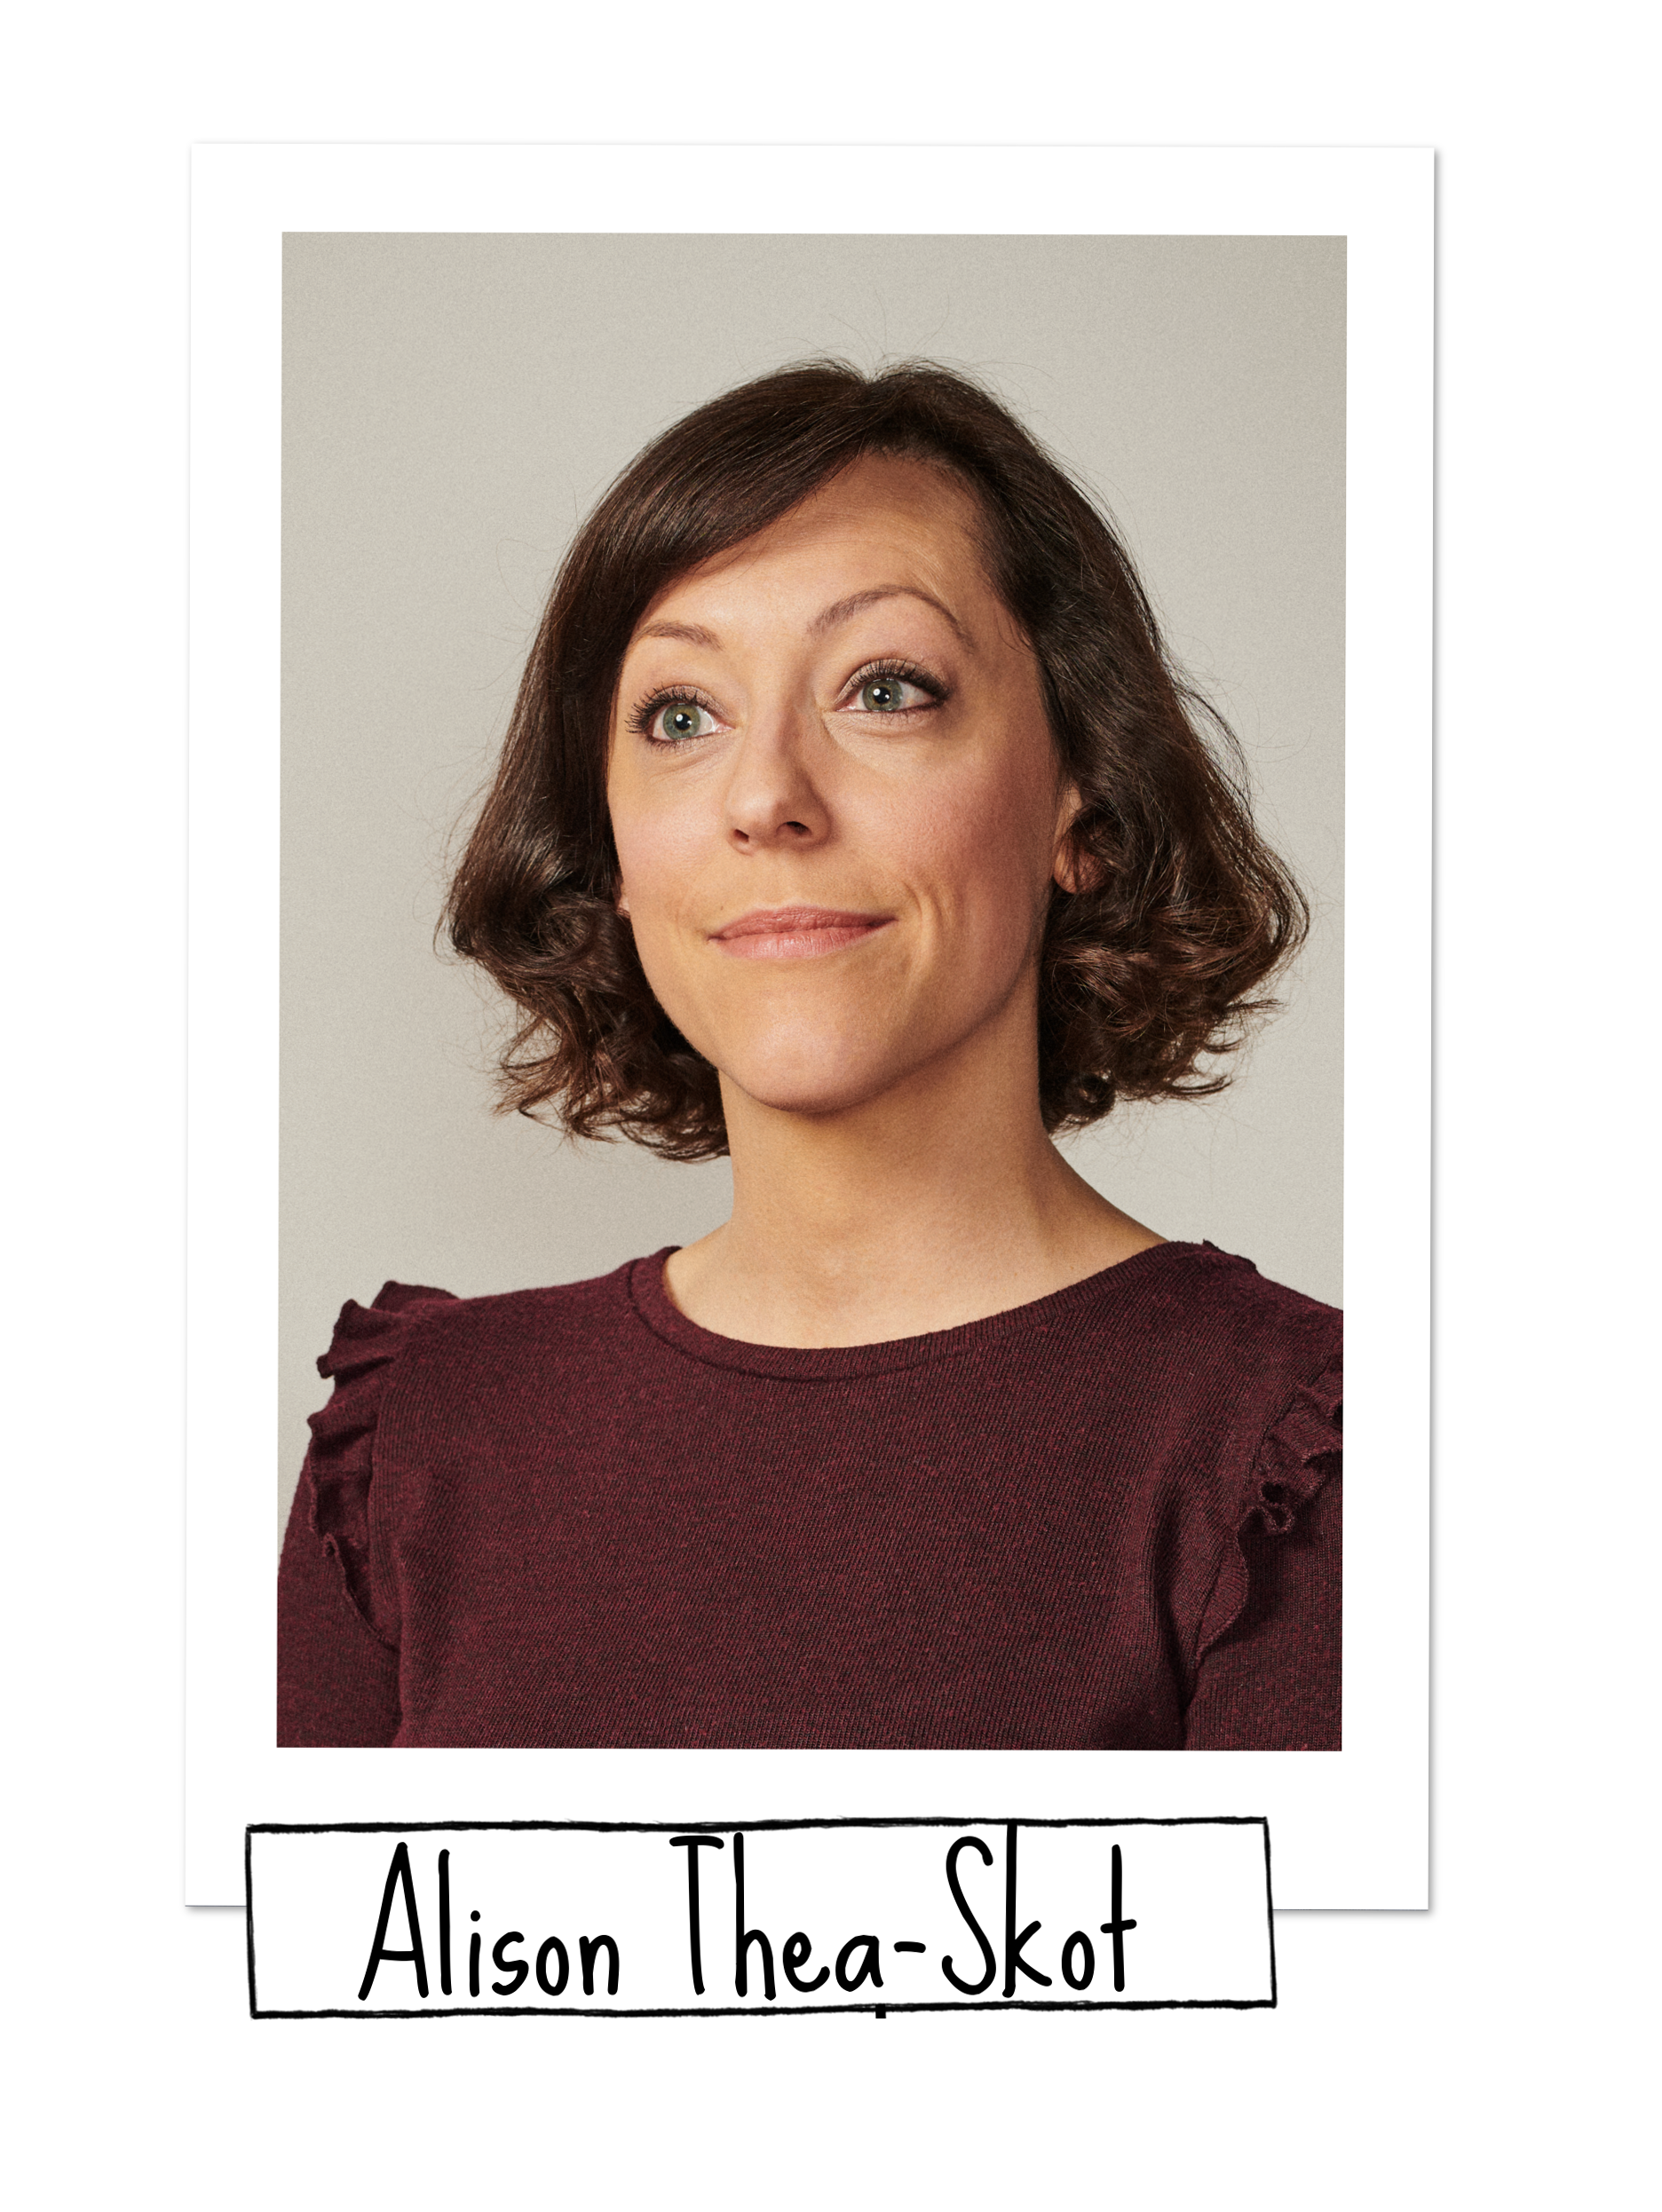 Alison is a critically acclaimed actress, comedian and writer and Head of Business Training at The Free Association. Her recent solo character comedy 'Some Like It Thea-Skot' was a 5-star sell out hit at The Edinburgh Fringe Festival and transferred to the Soho Theatre in London. Alison teaches and performs at The Free Association, and also guest improvises with Chortle award winners Austentatious and can be heard in several Radio 4 comedy sketch shows, and seen on TV's News Jack.   You can see Alison performing with…   Ladies of FA County, Jacuzii, Sorry, I'm Not Here To Make Friends and More!